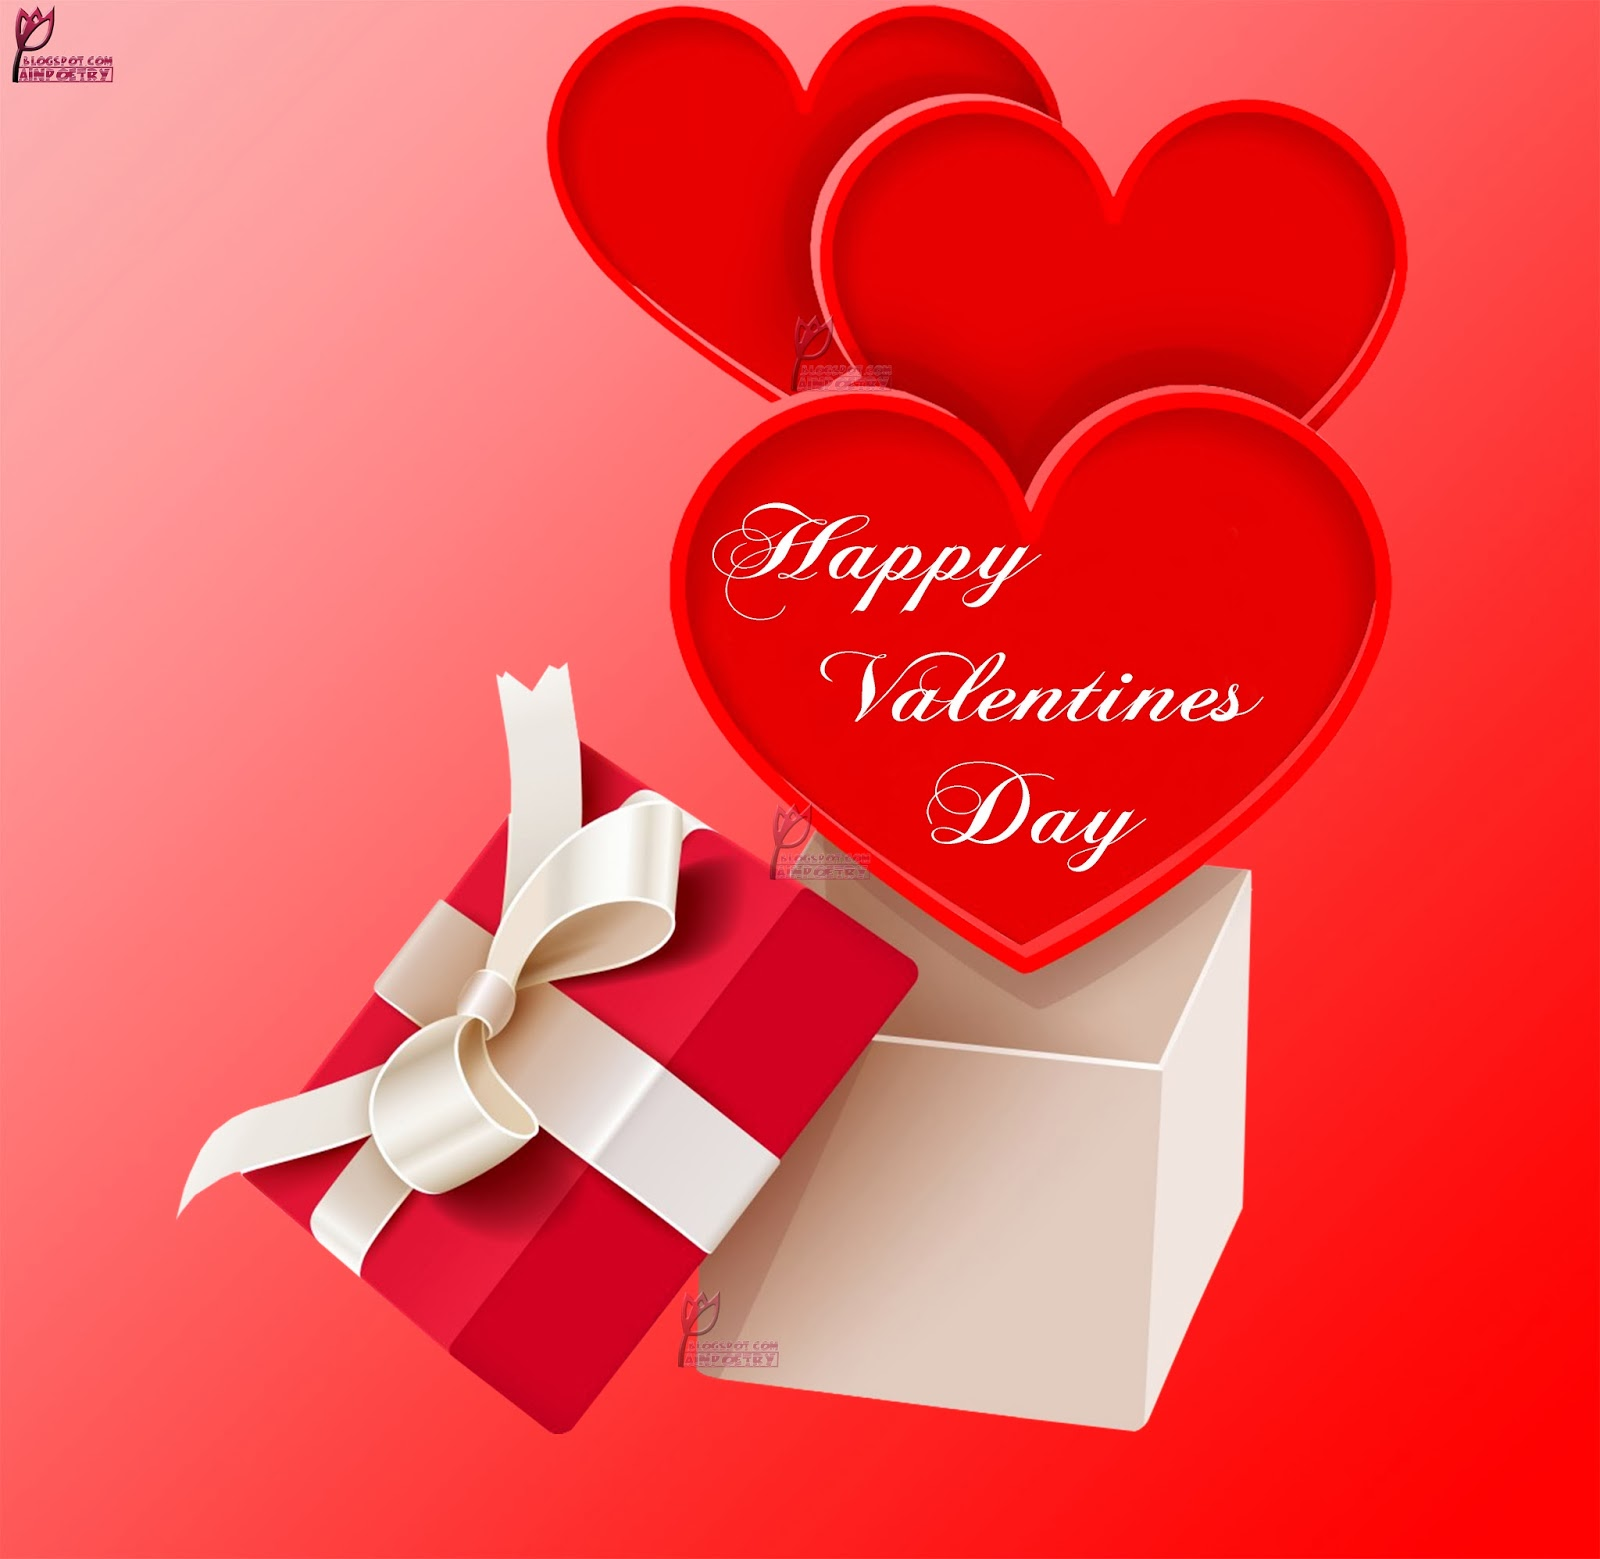 Happy-Valentines-Day-Wishes-Wallpaper-With-Gifts-Image-HD-Wide